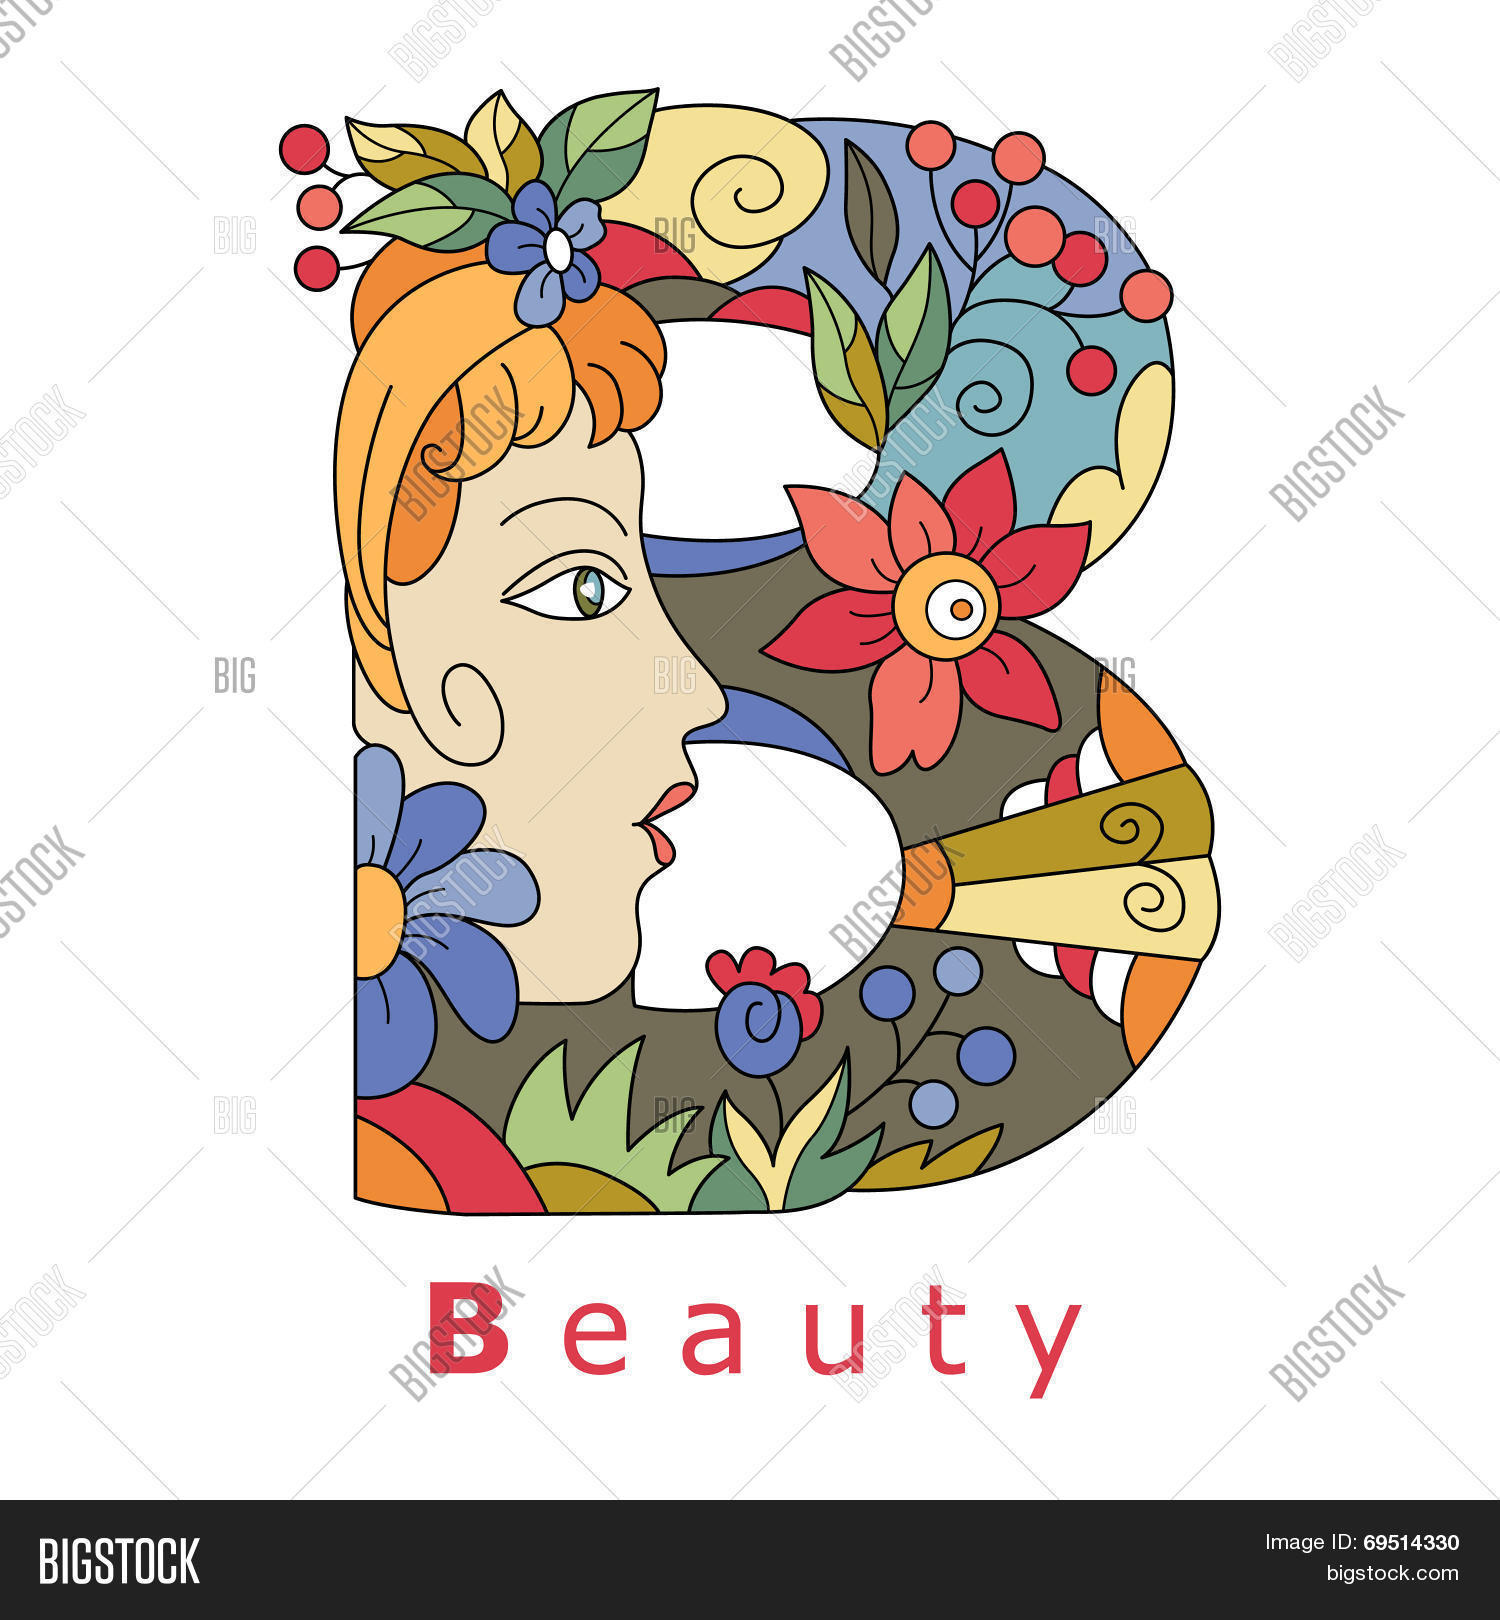 747e3941fec2 decorative initial capital letter B with a face of pretty woman and  decorative flowers. Vector image.